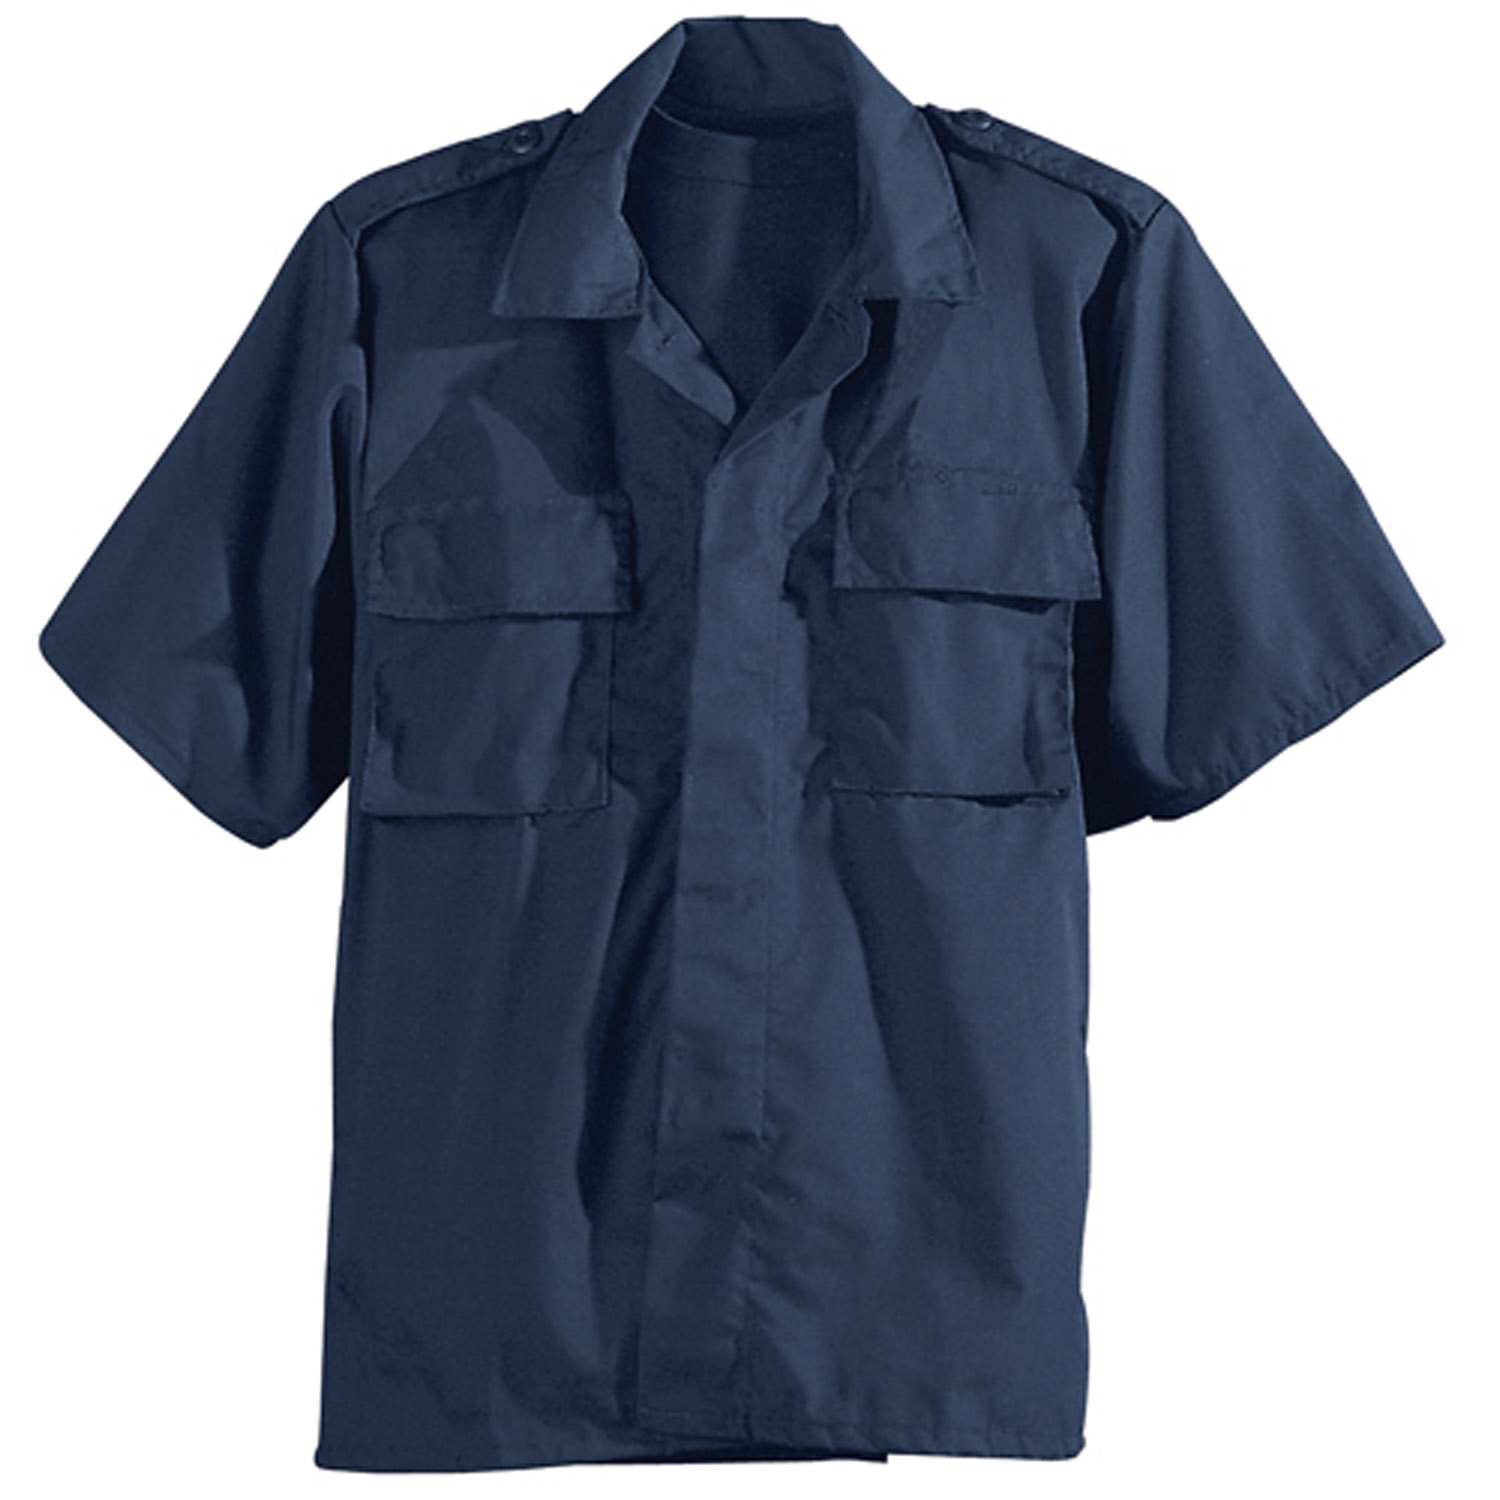 Tru-Spec Poly Cotton Short Sleeve Shirt